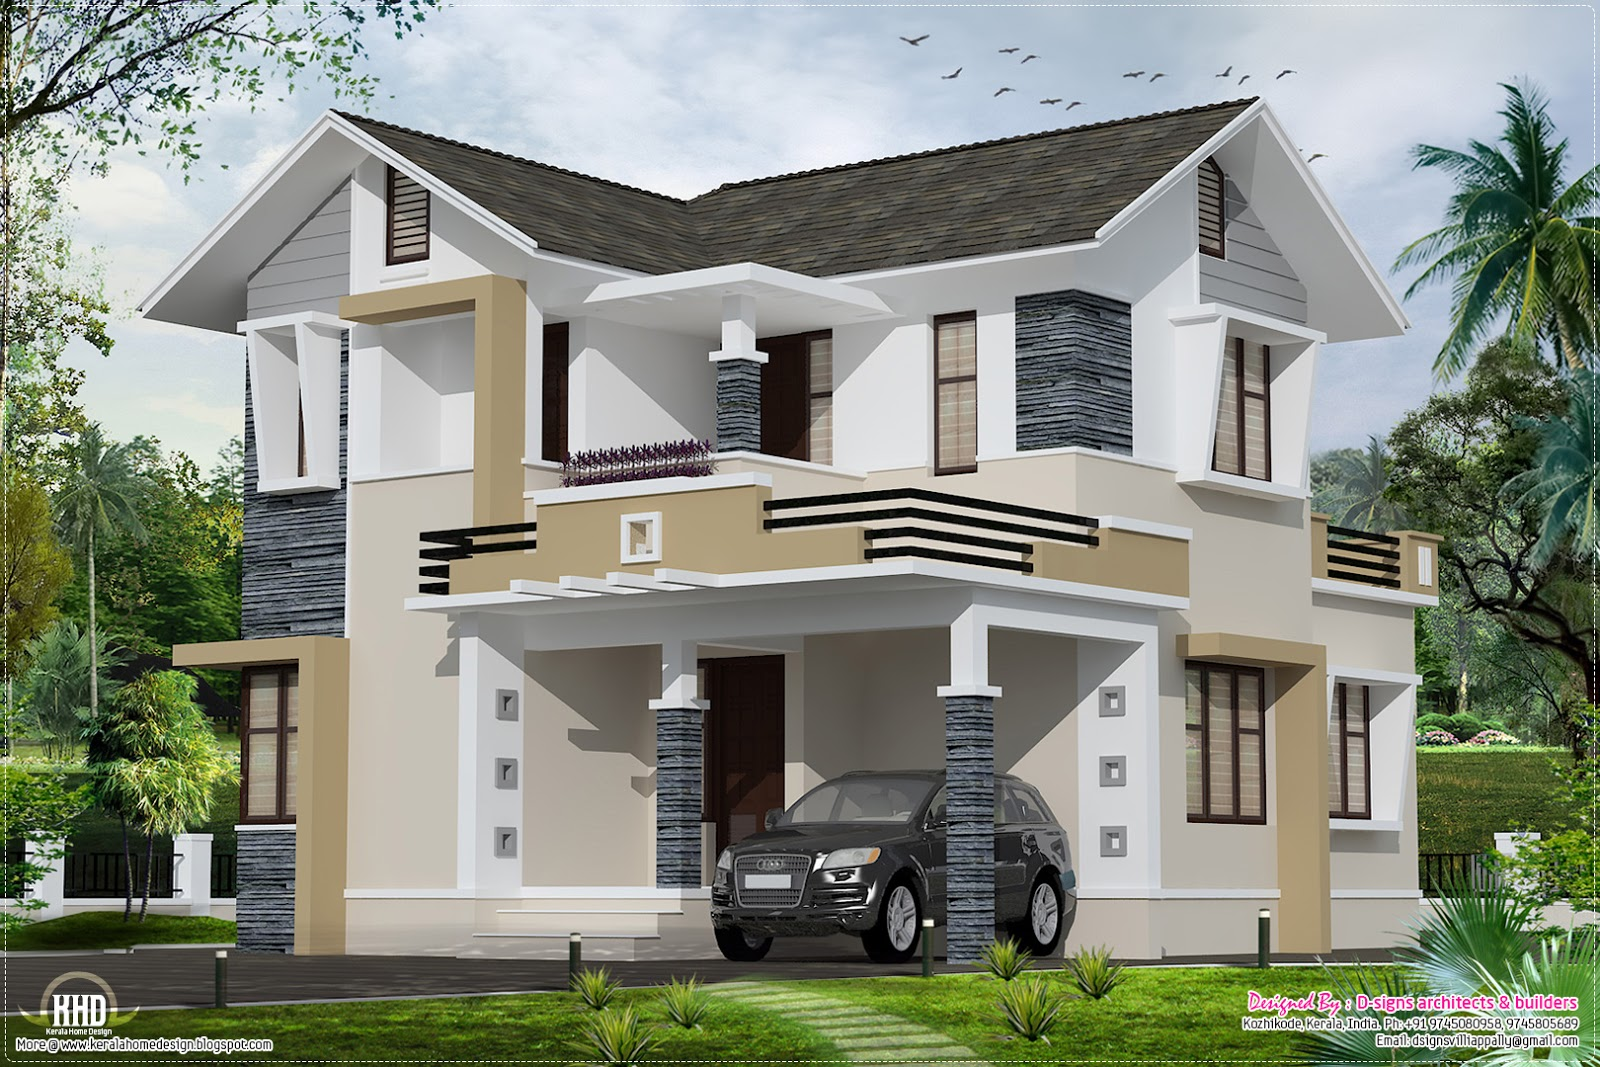 Stylish small home design kerala home design and floor plans - House to home designs ...